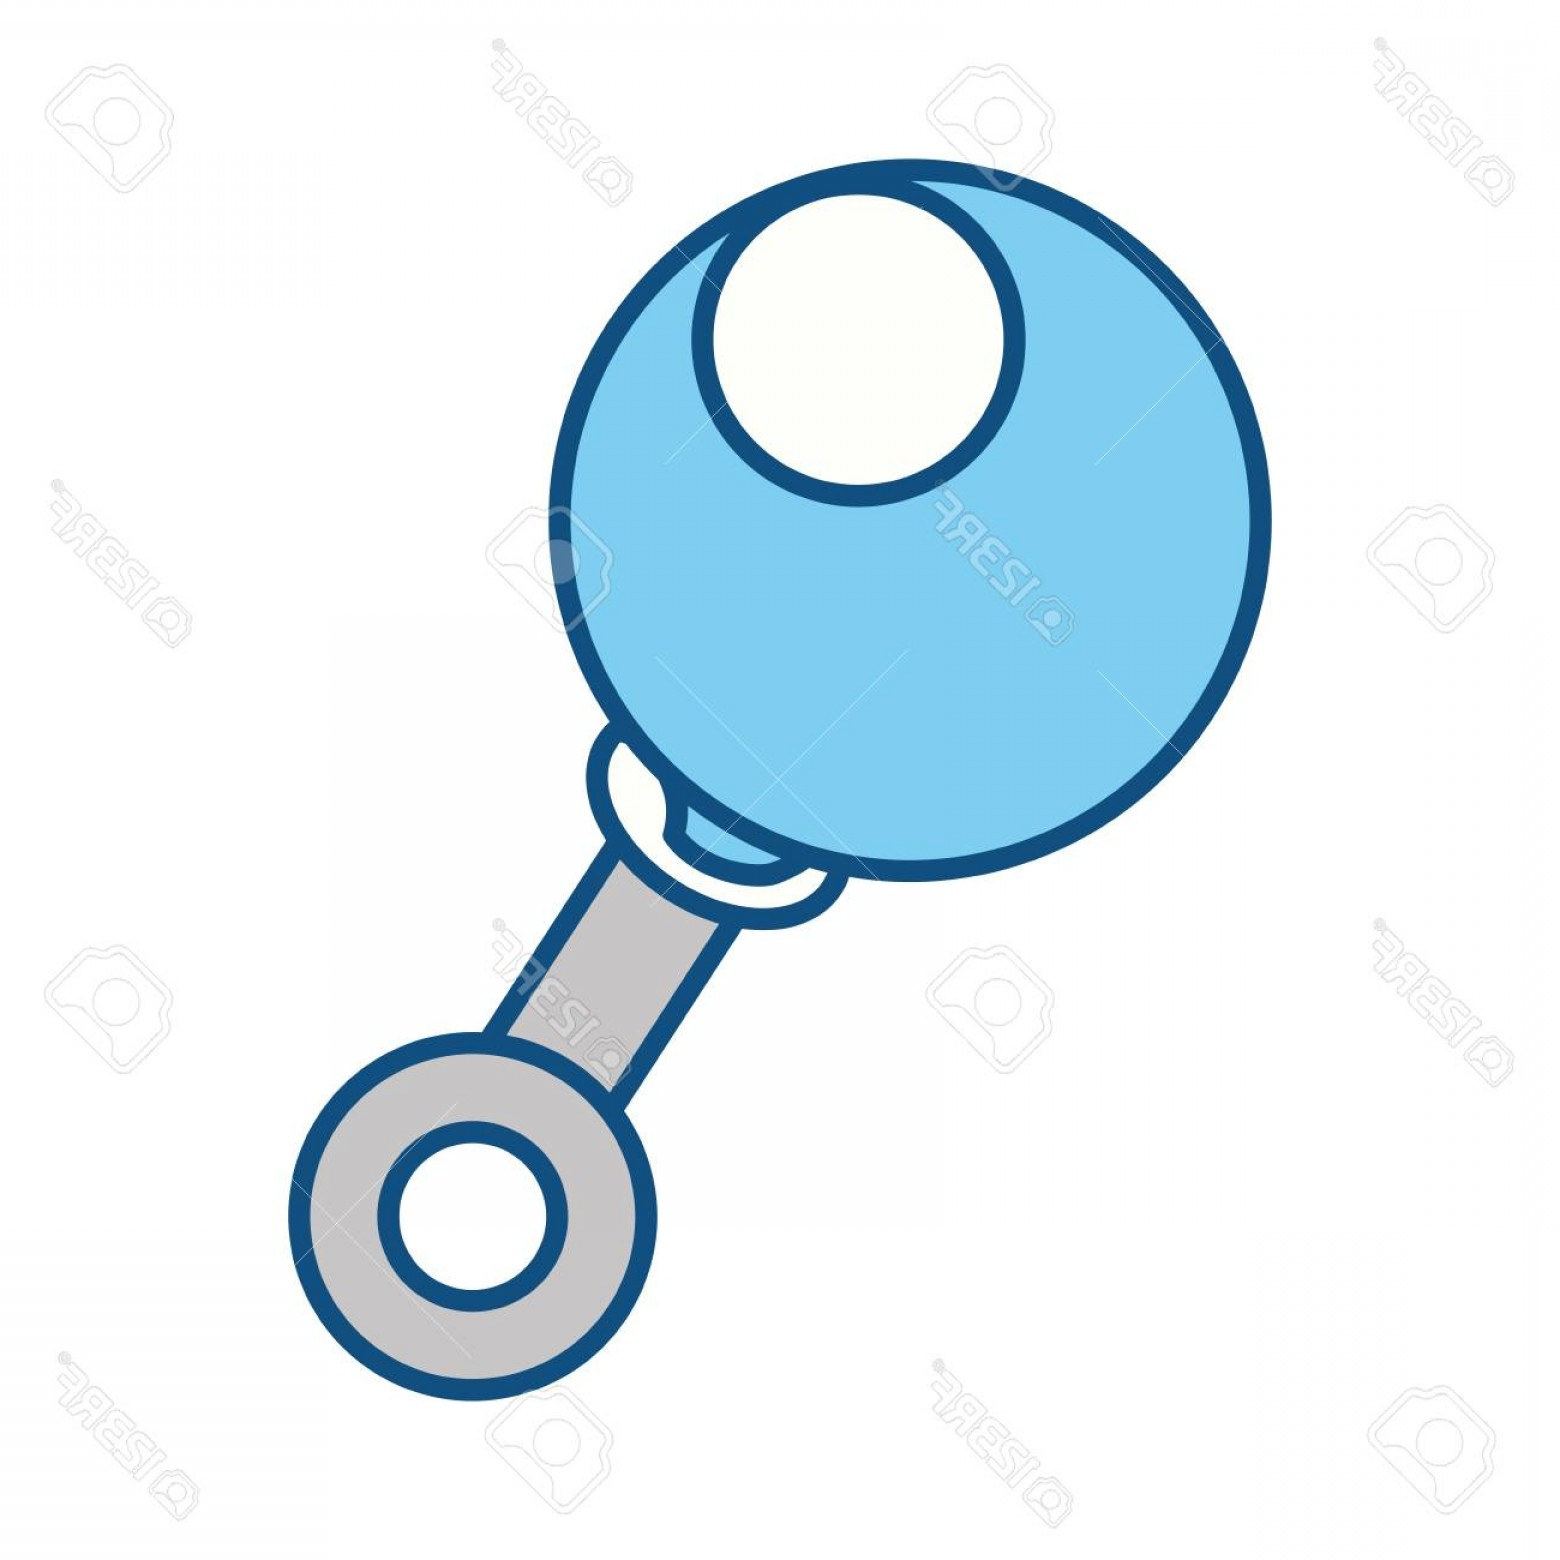 Baby Toy Vector: Photostock Vector Rattle Baby Toy Icon Vector Illustration Graphic Design